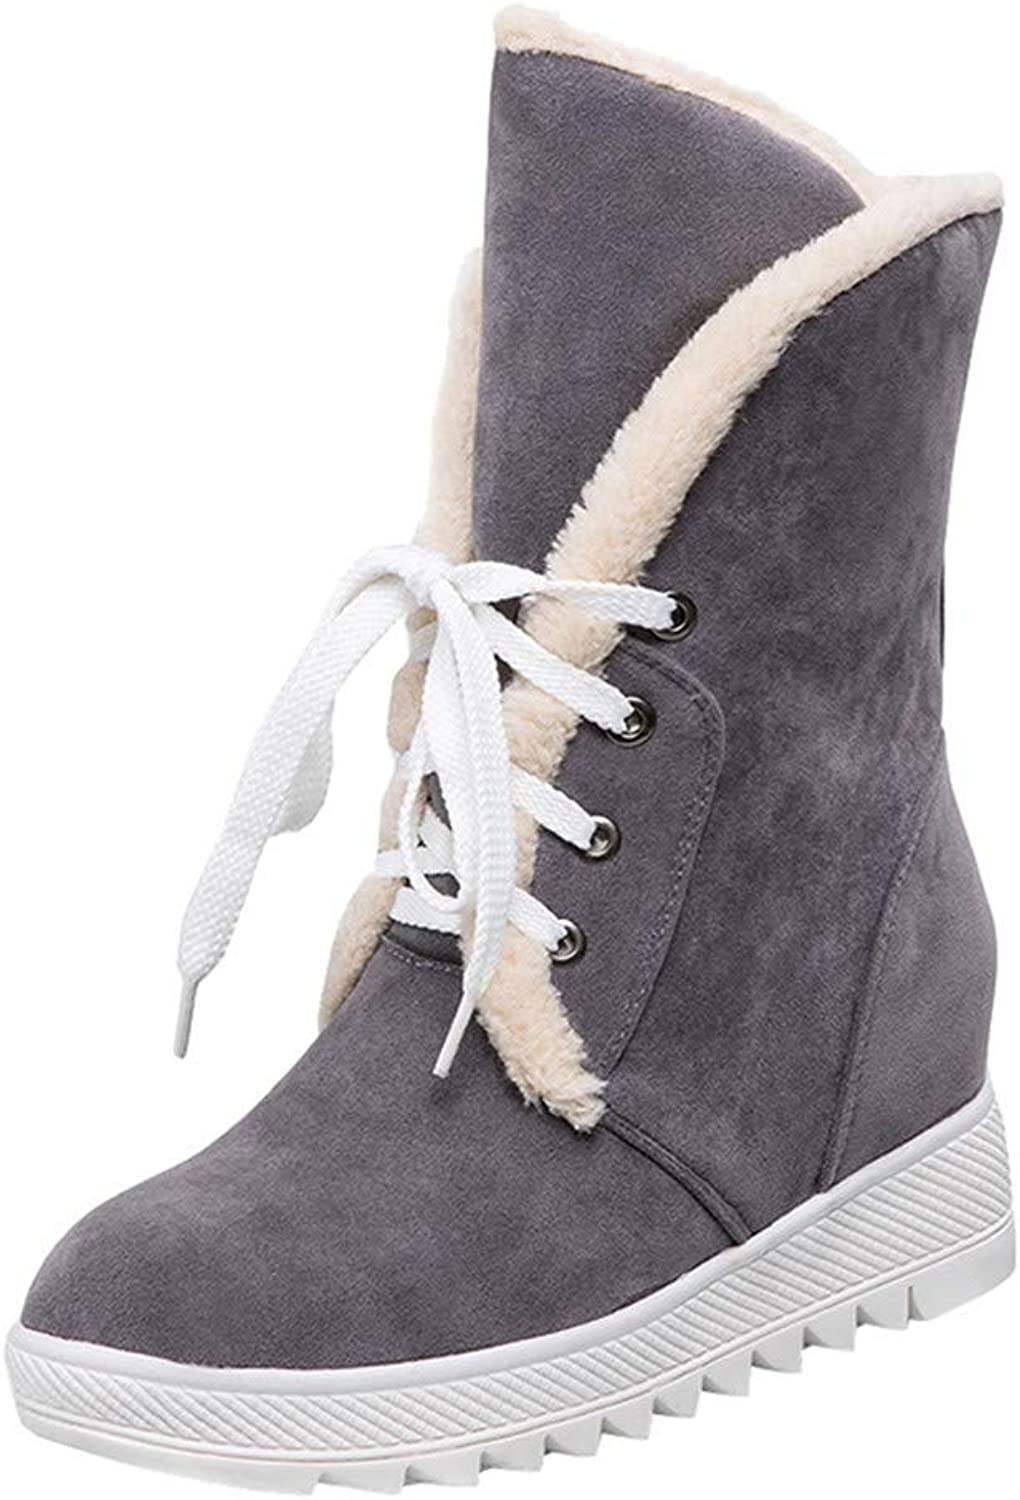 Esharing Elegant Women's Fluff Liner Cross Lace Up Comfy Short Boots Lady Snow Booties